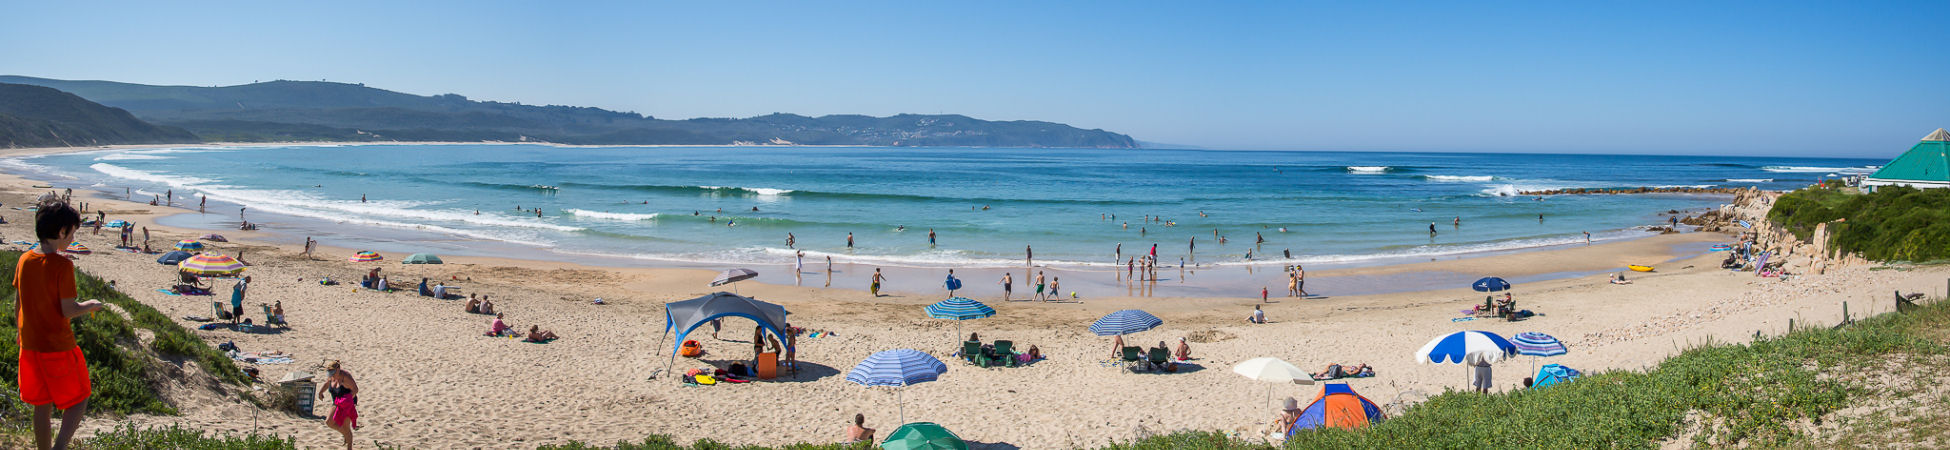 beach_knysna_things_to_do_activities_best_life_brenton